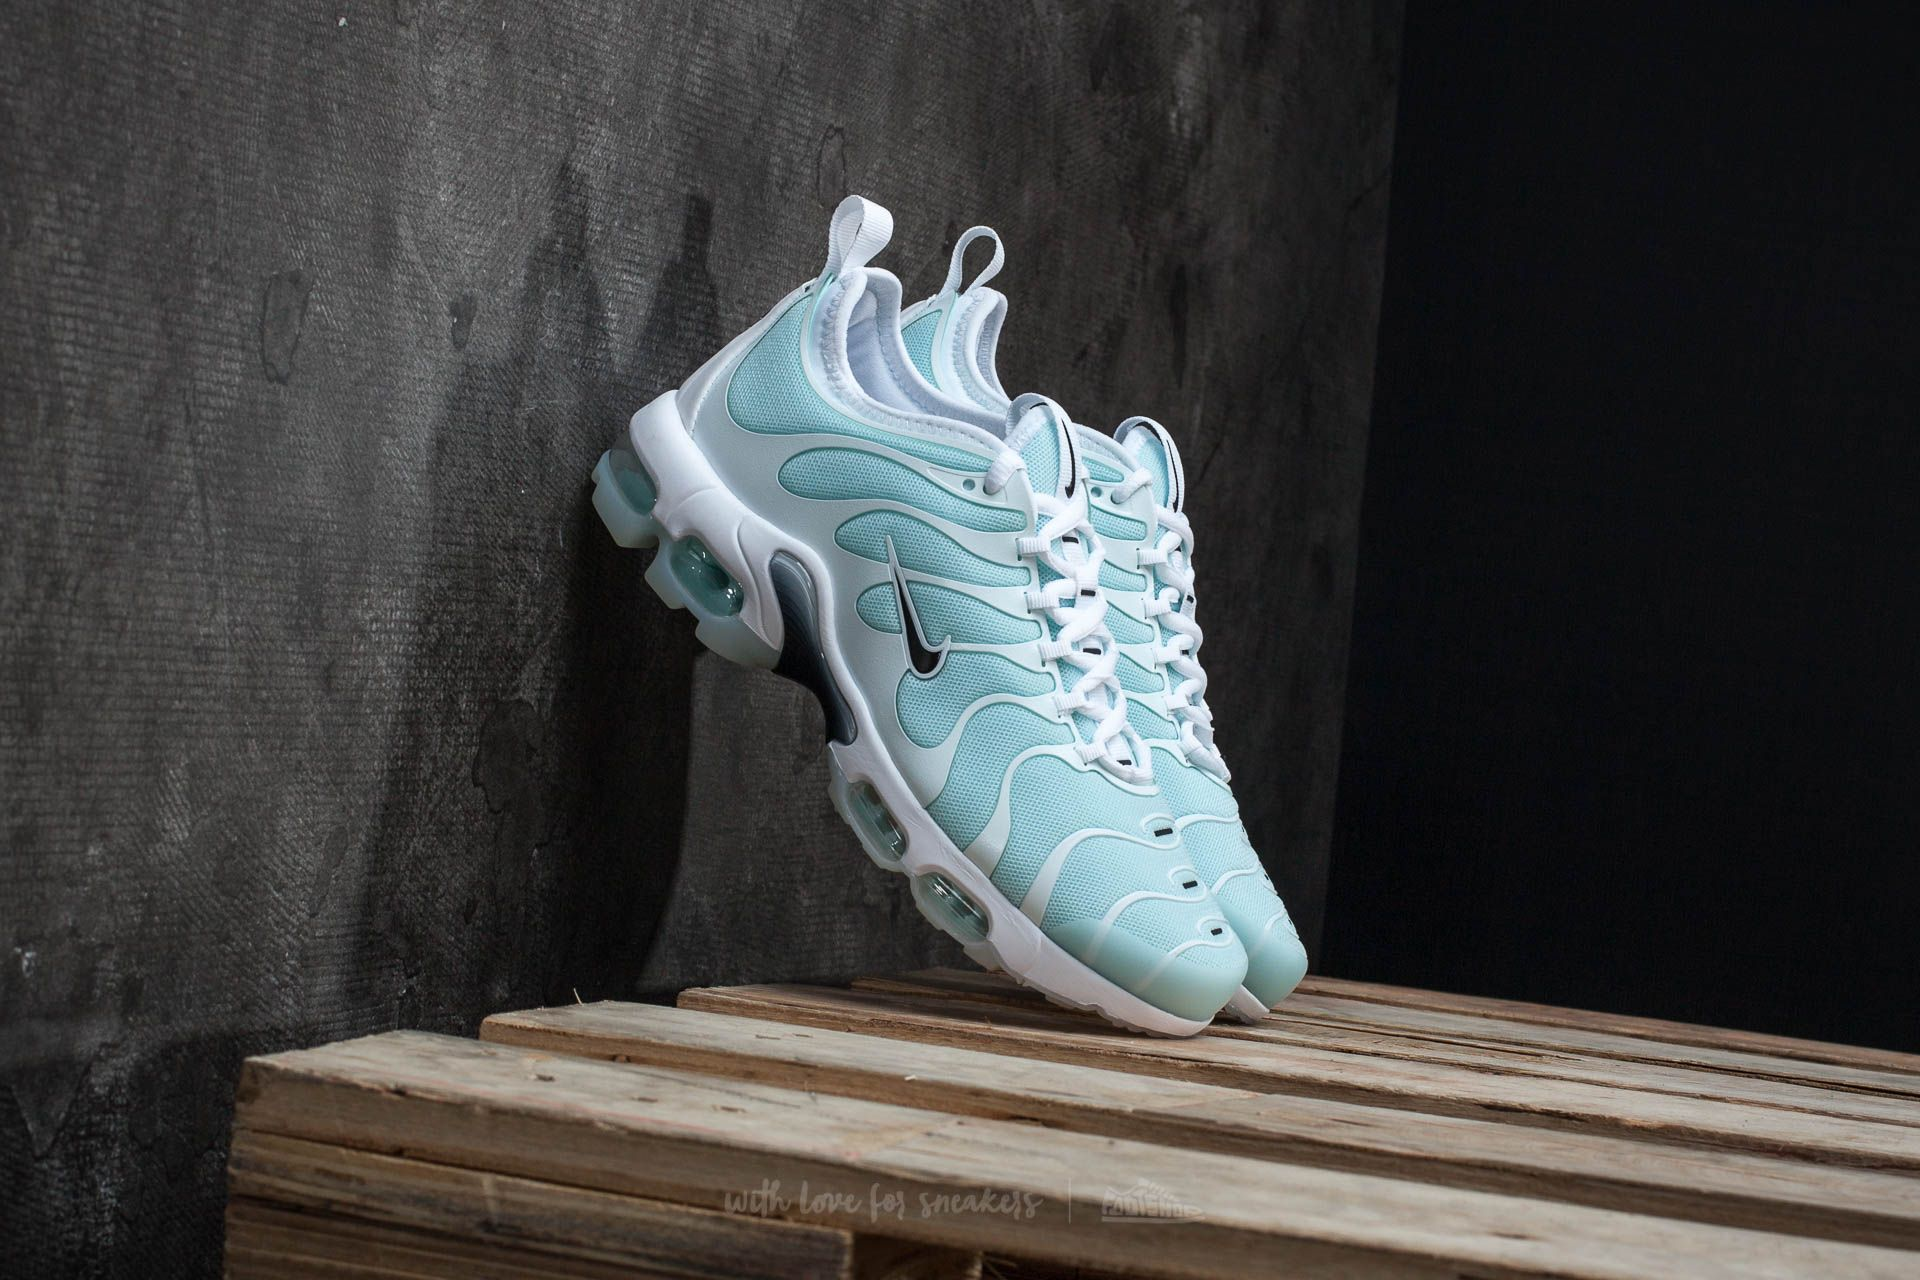 Nike Wmns Air Max Plus TN Ultra Glacier Blue Black White | Footshop